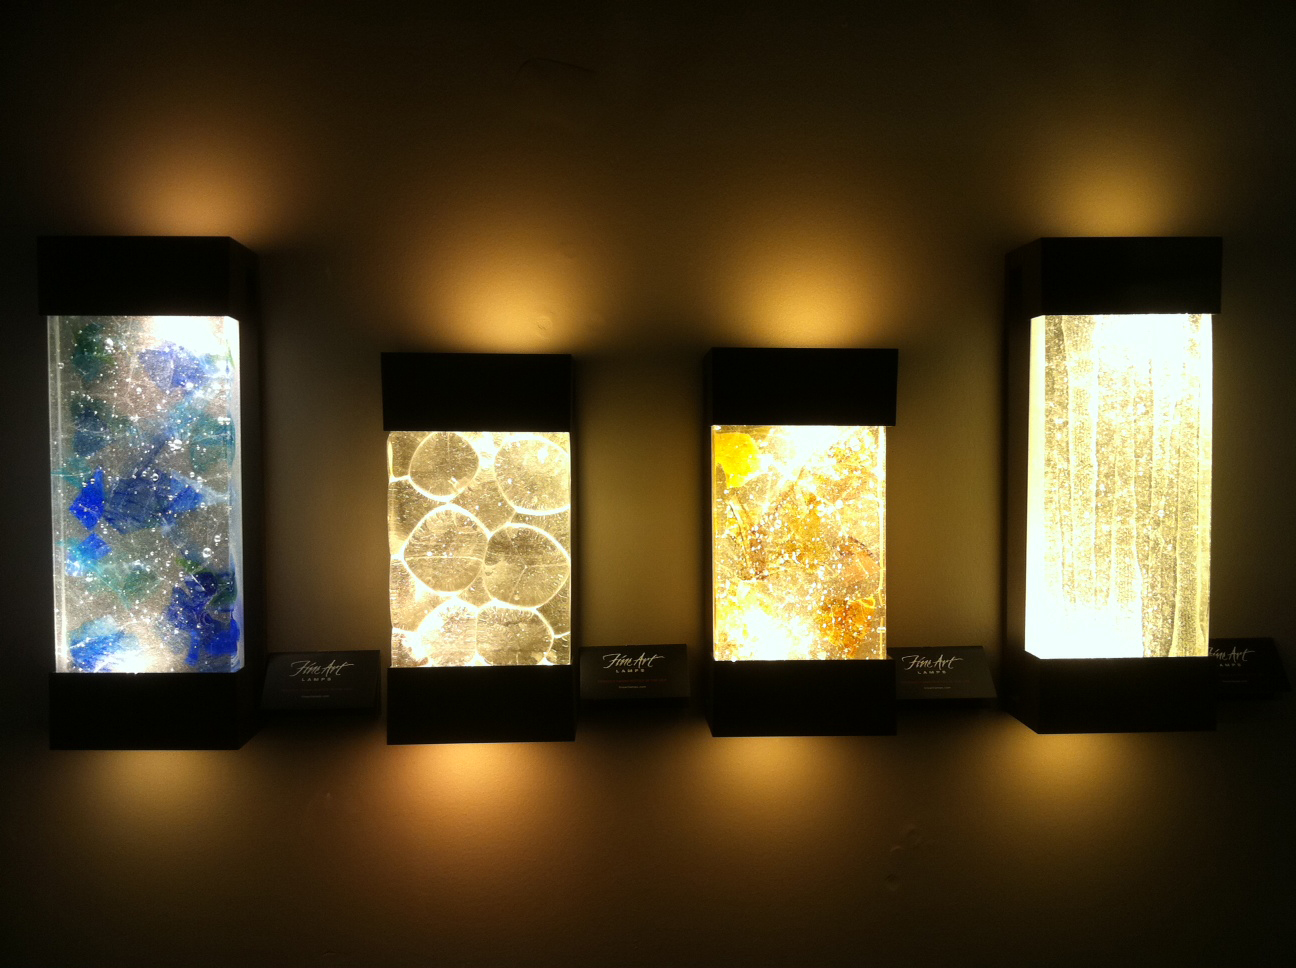 Led Wall Lights Bulbs : Wall art with led lights - the art of the future Warisan Lighting